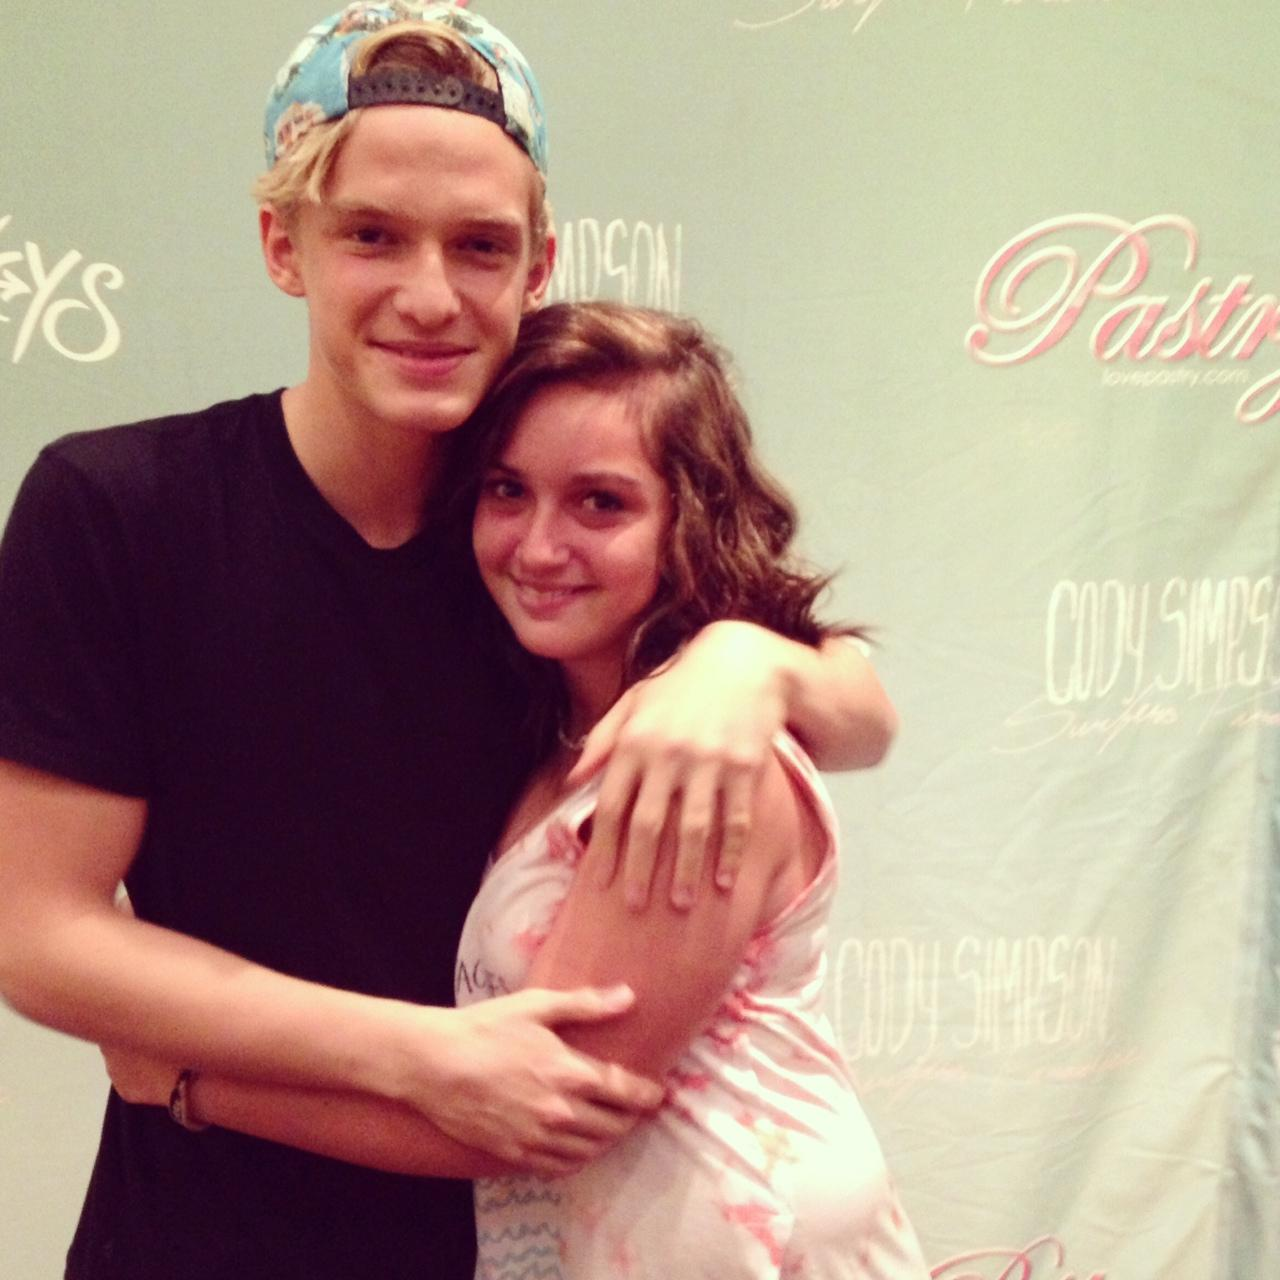 Cody Simpson and Kate Mannarino at a meet and greet in D.C. on August 3, 2013